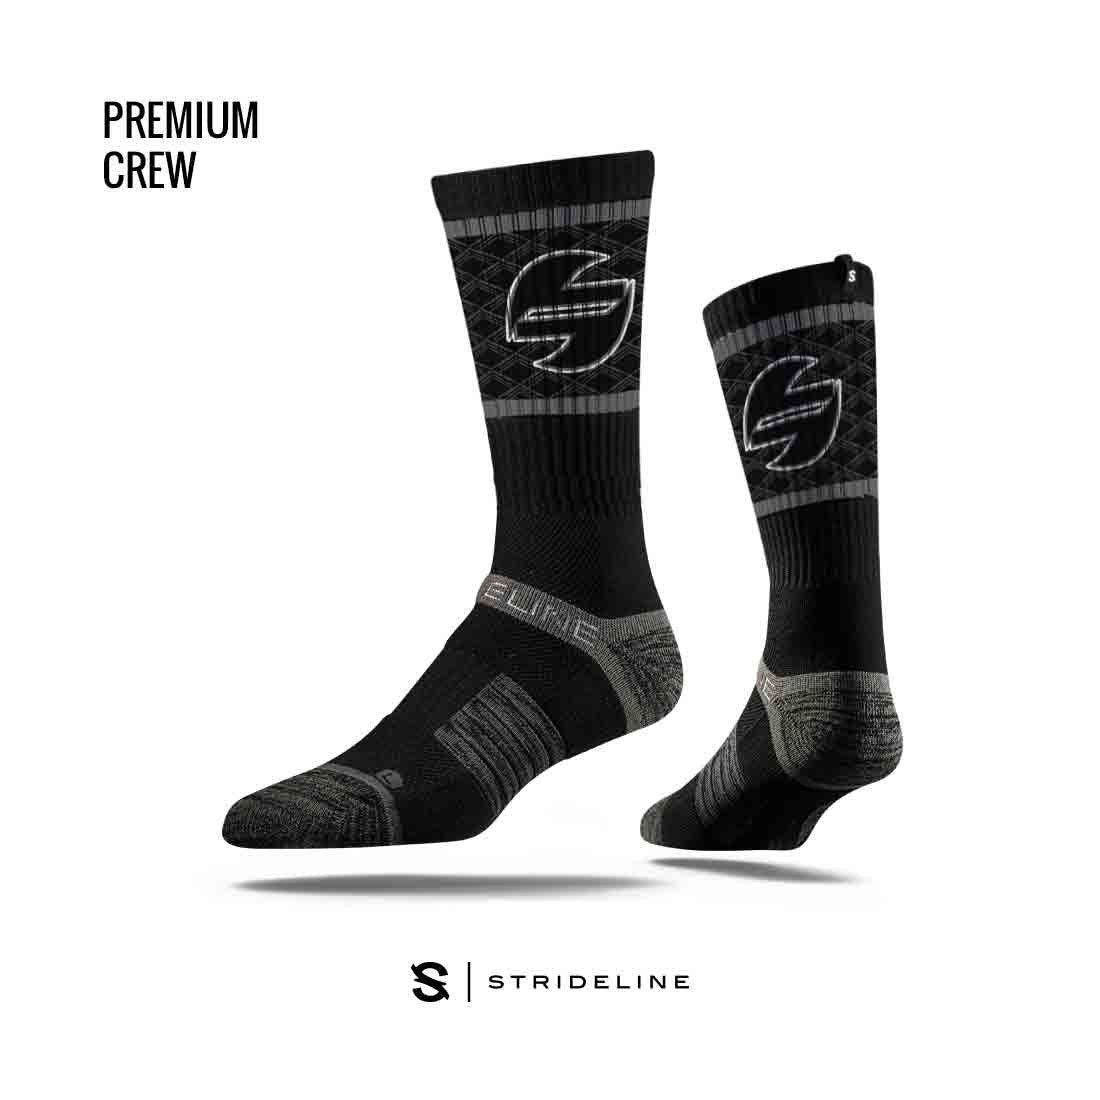 ACES Alternative High School Apparel | Socks | Premium